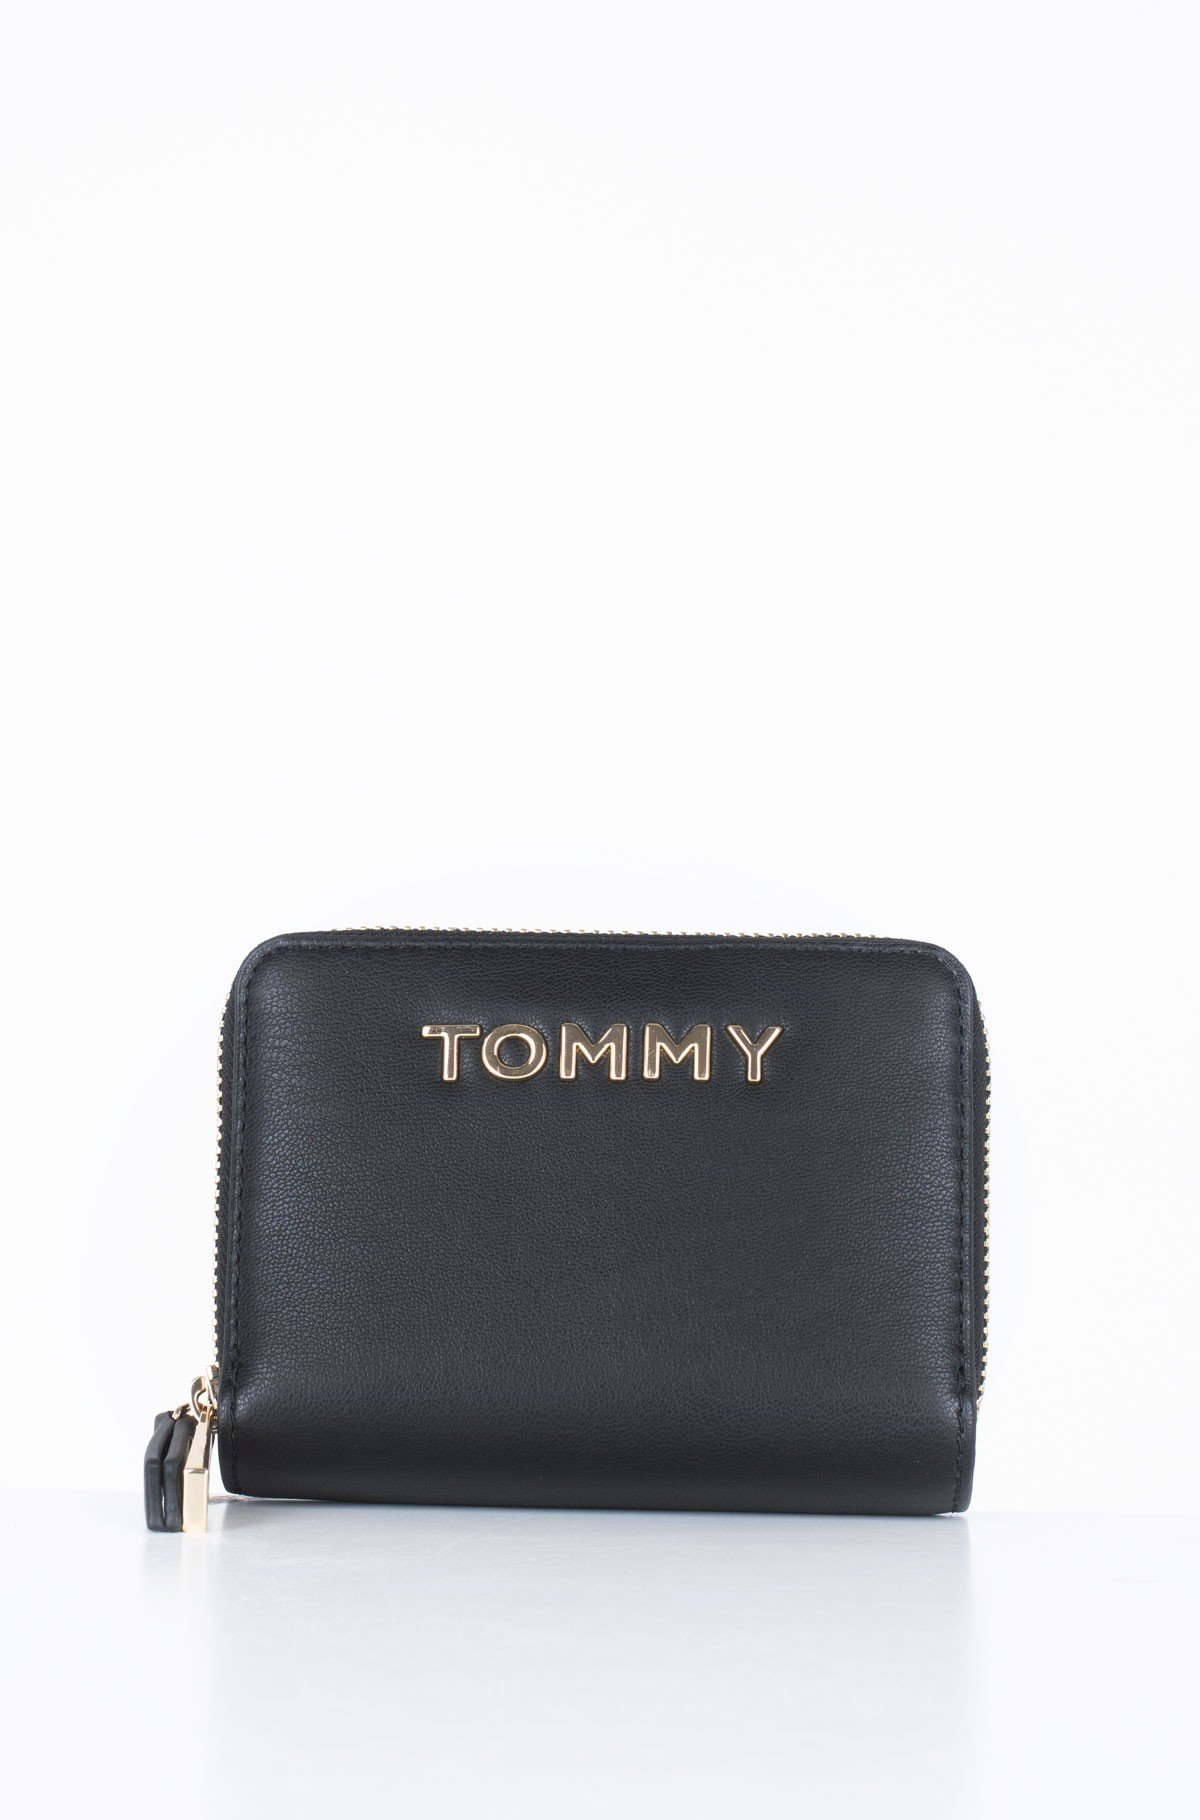 Wallet ICONIC TOMMY MED DBL ZA-full-1